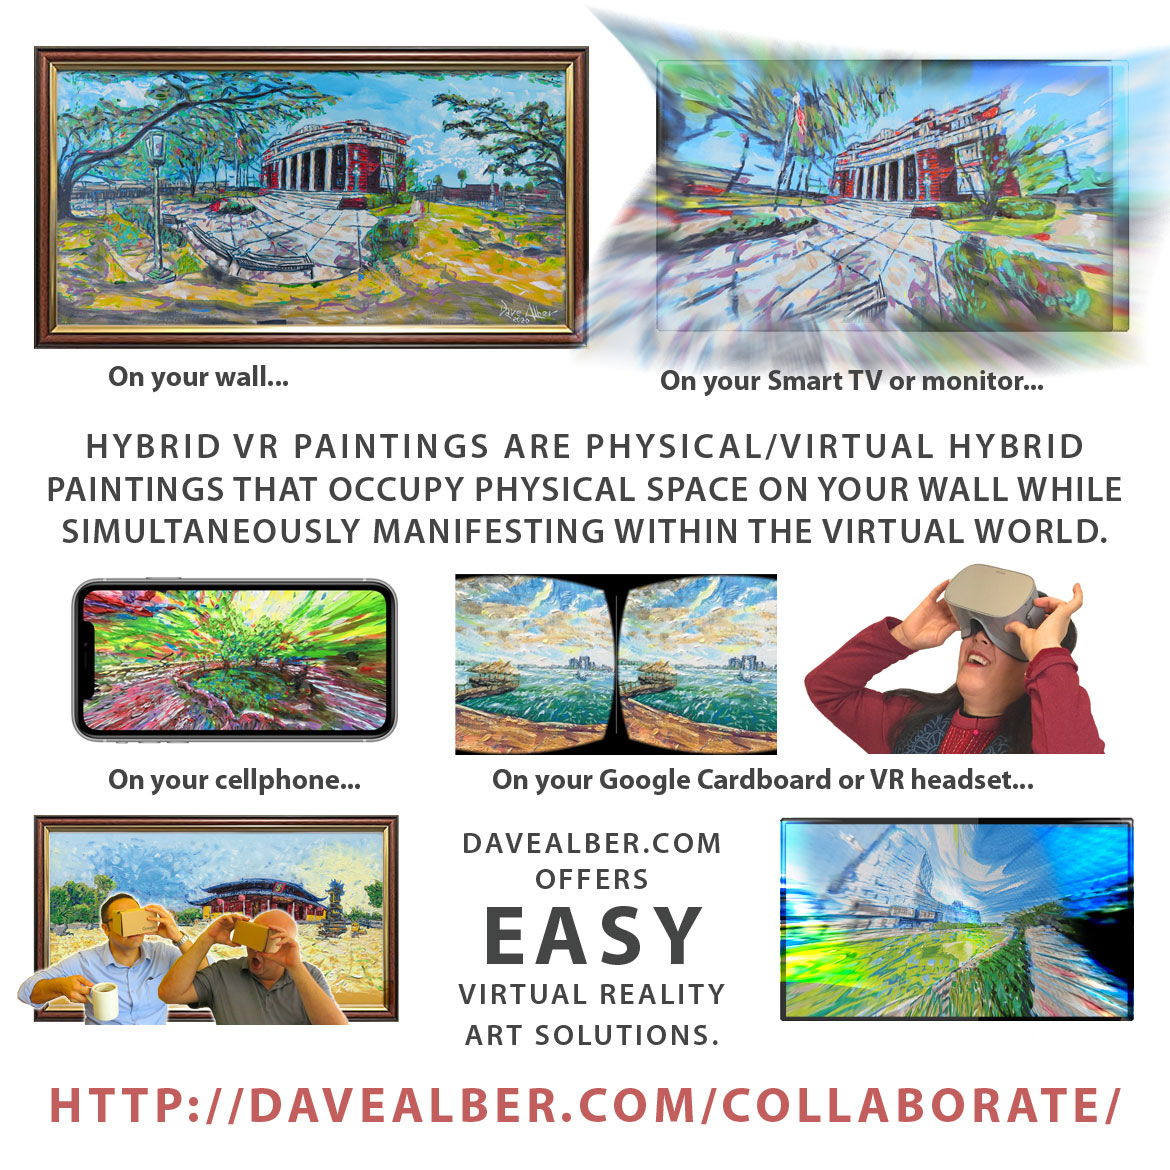 Hybrid VR Paintings Allow Art Businesses to Thrive with Virtual Reality Galleries and Fully Immersive VR Paintings